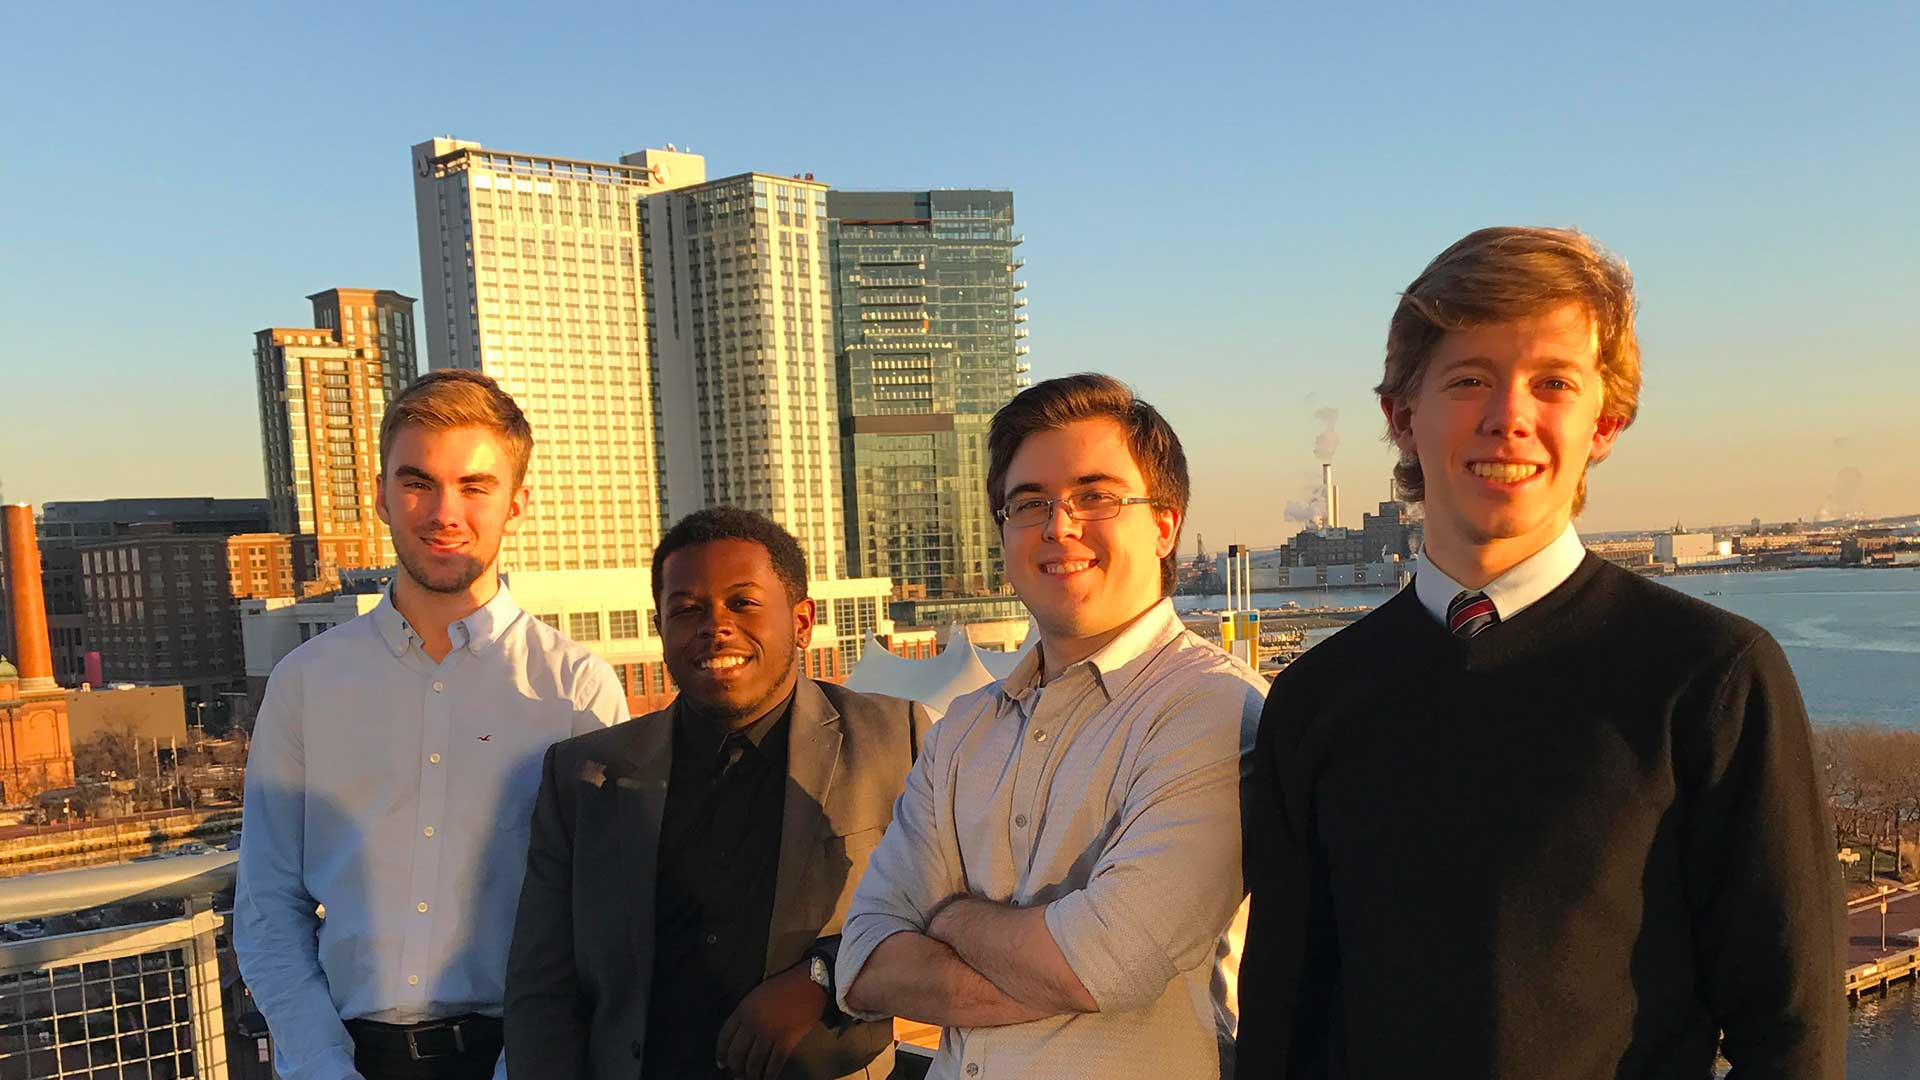 SMCM interns on a rooftop with a city backdrop.